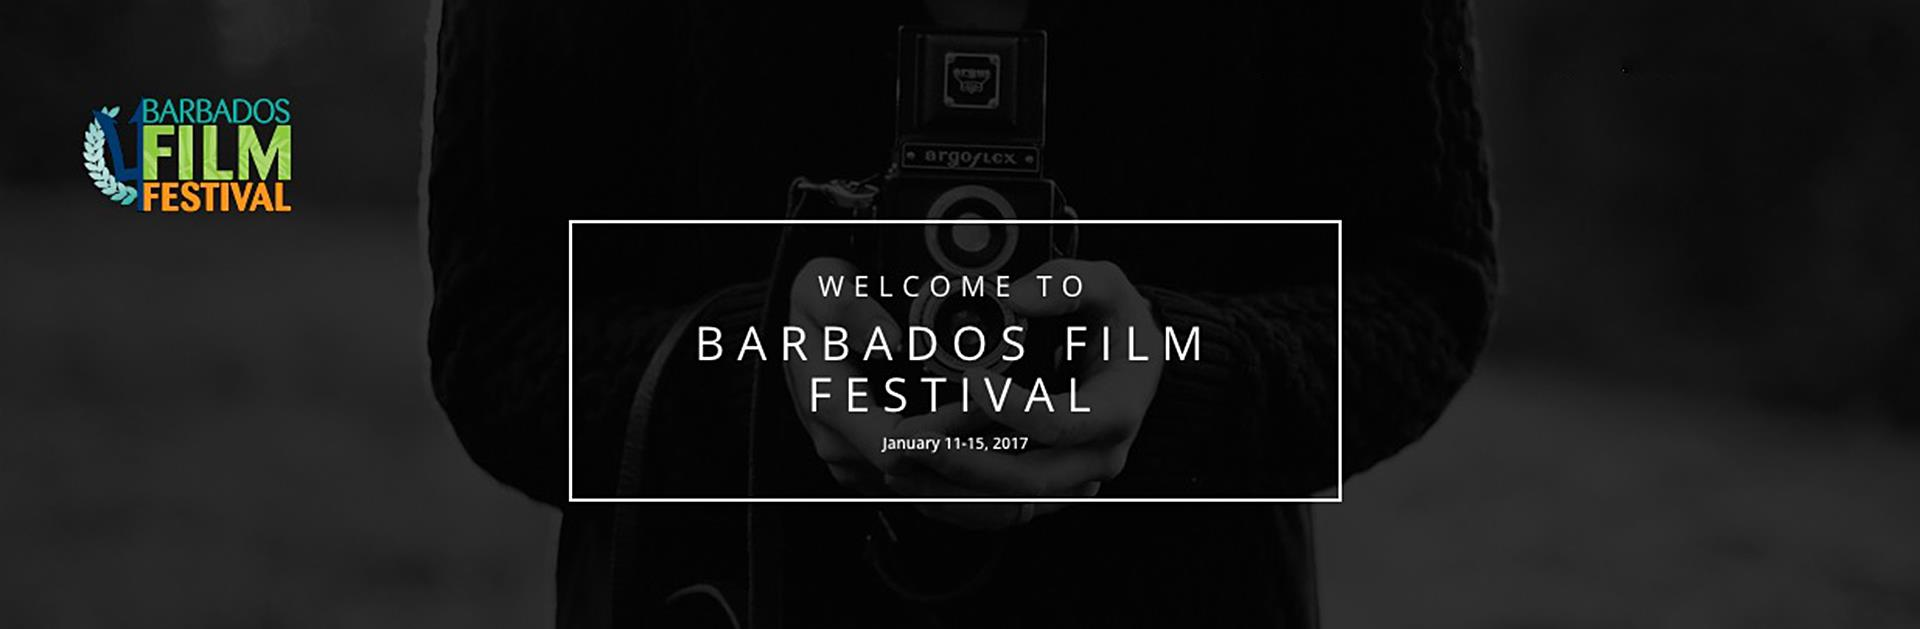 The Barbados Film Festival